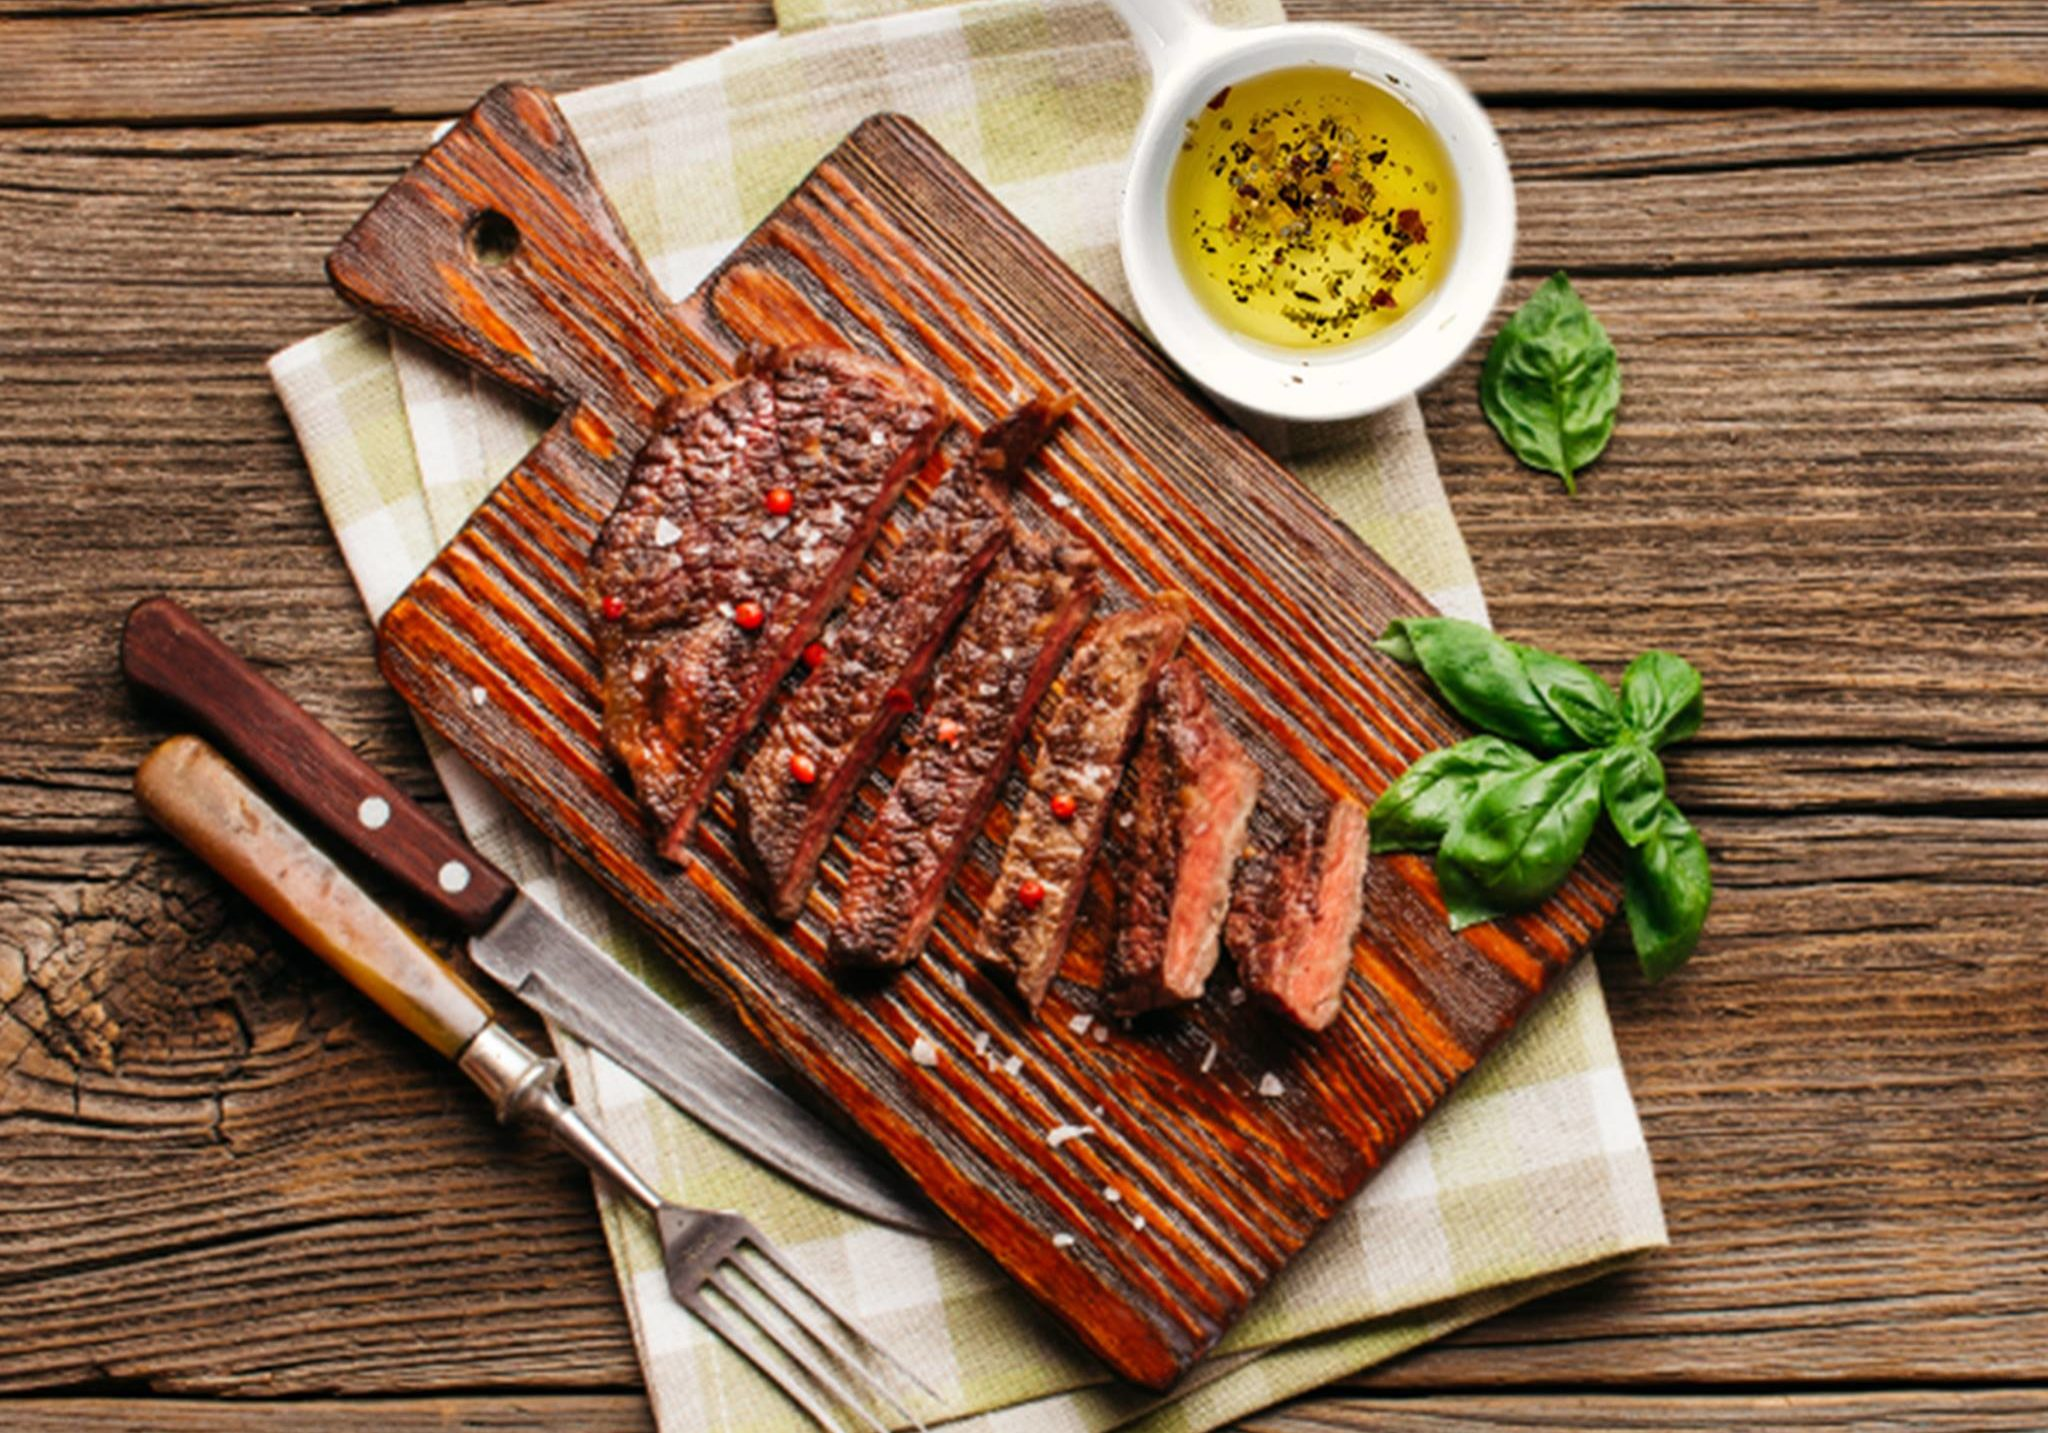 Marinated Steak recipe that includes ways of preparing a marinade with Willow Creek's Extra Virgin Olive Oil